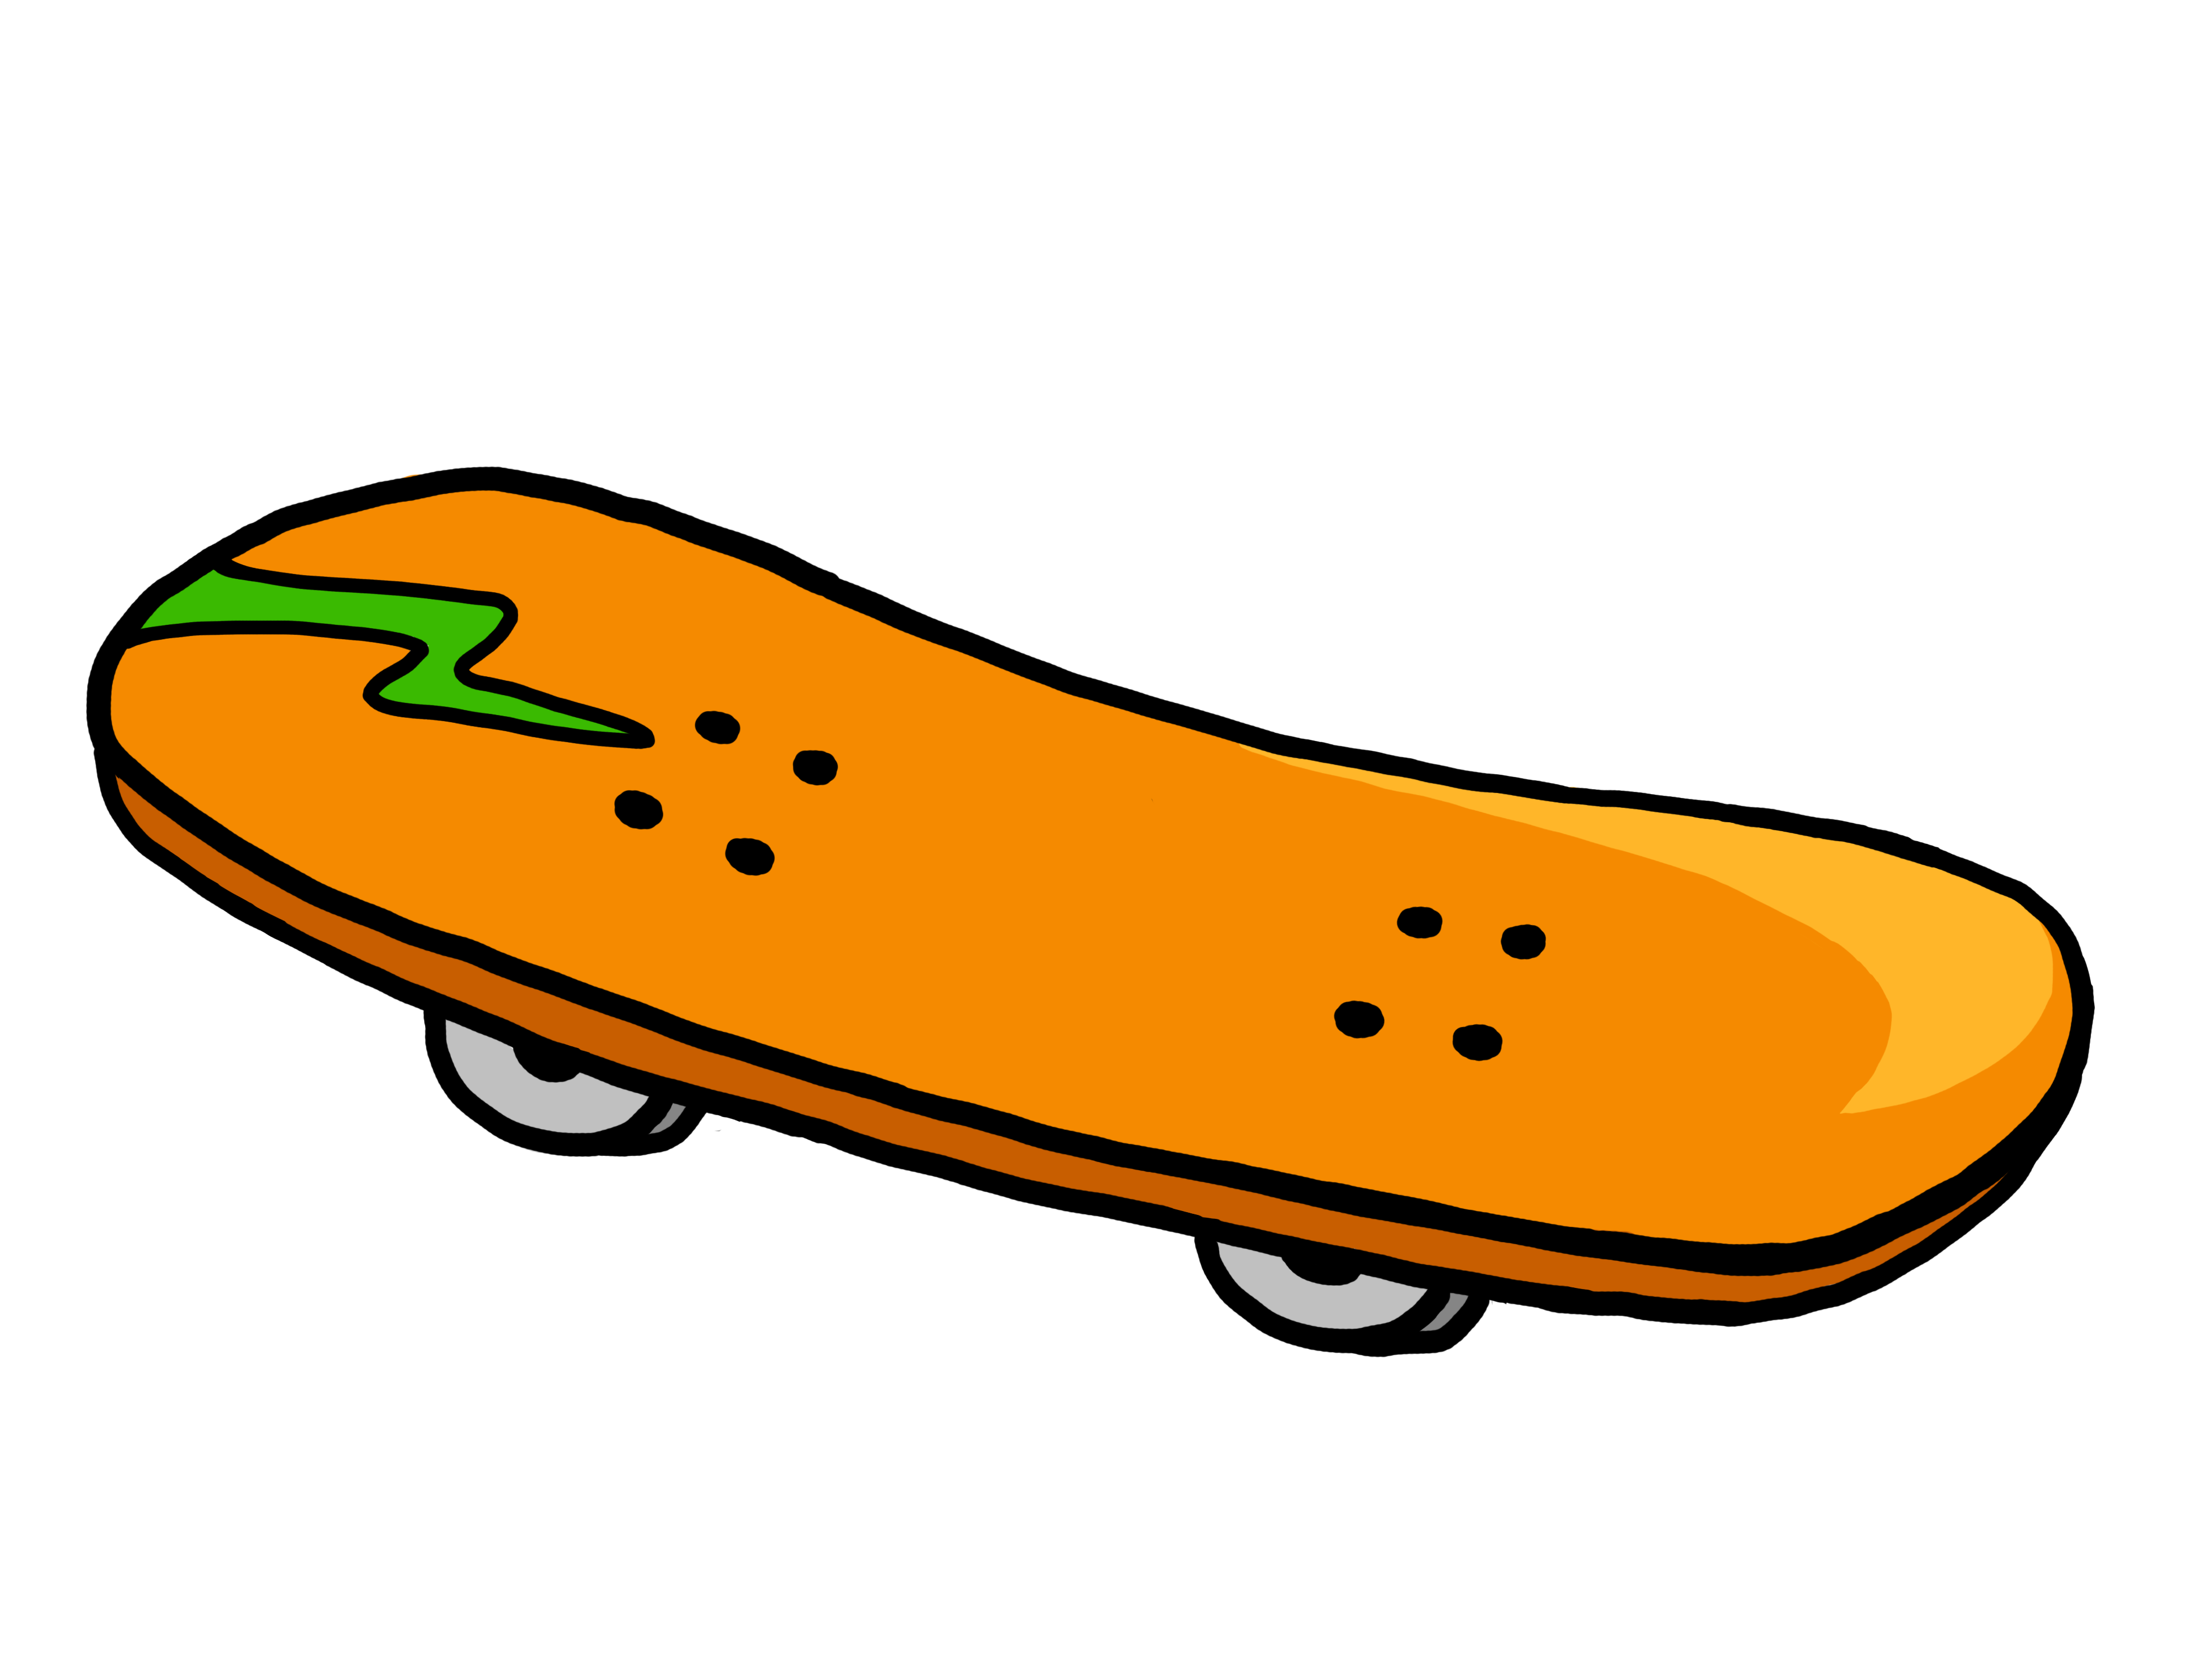 Skateboard clipart #13, Download drawings